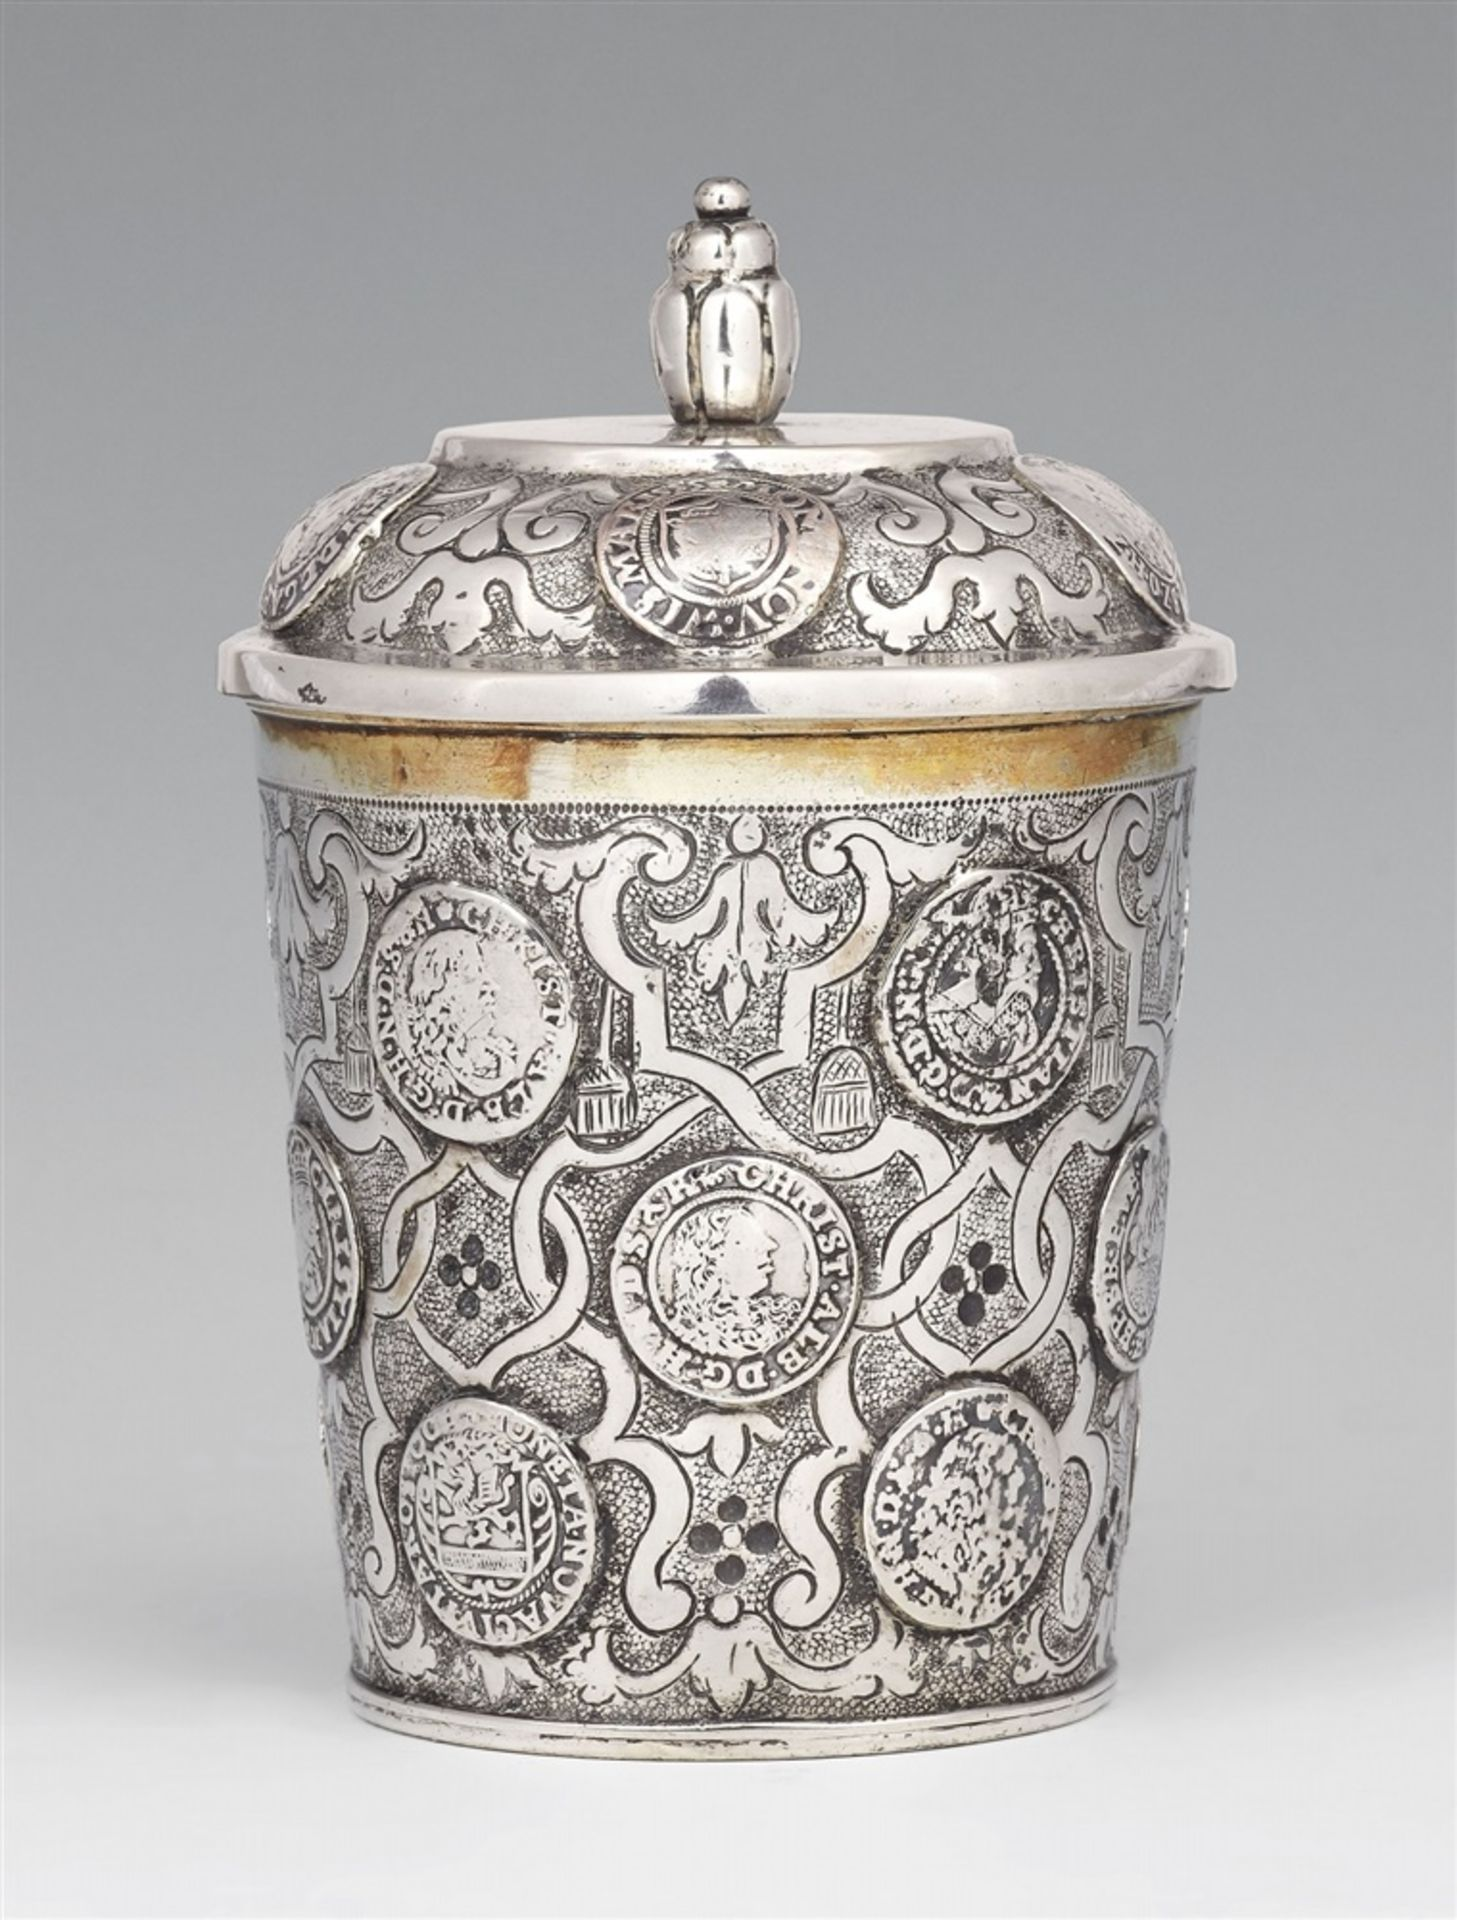 Los 742 - A Braunschweig silver coin beakerSilver; gilded inside. Silver beaker with gilt interior, with